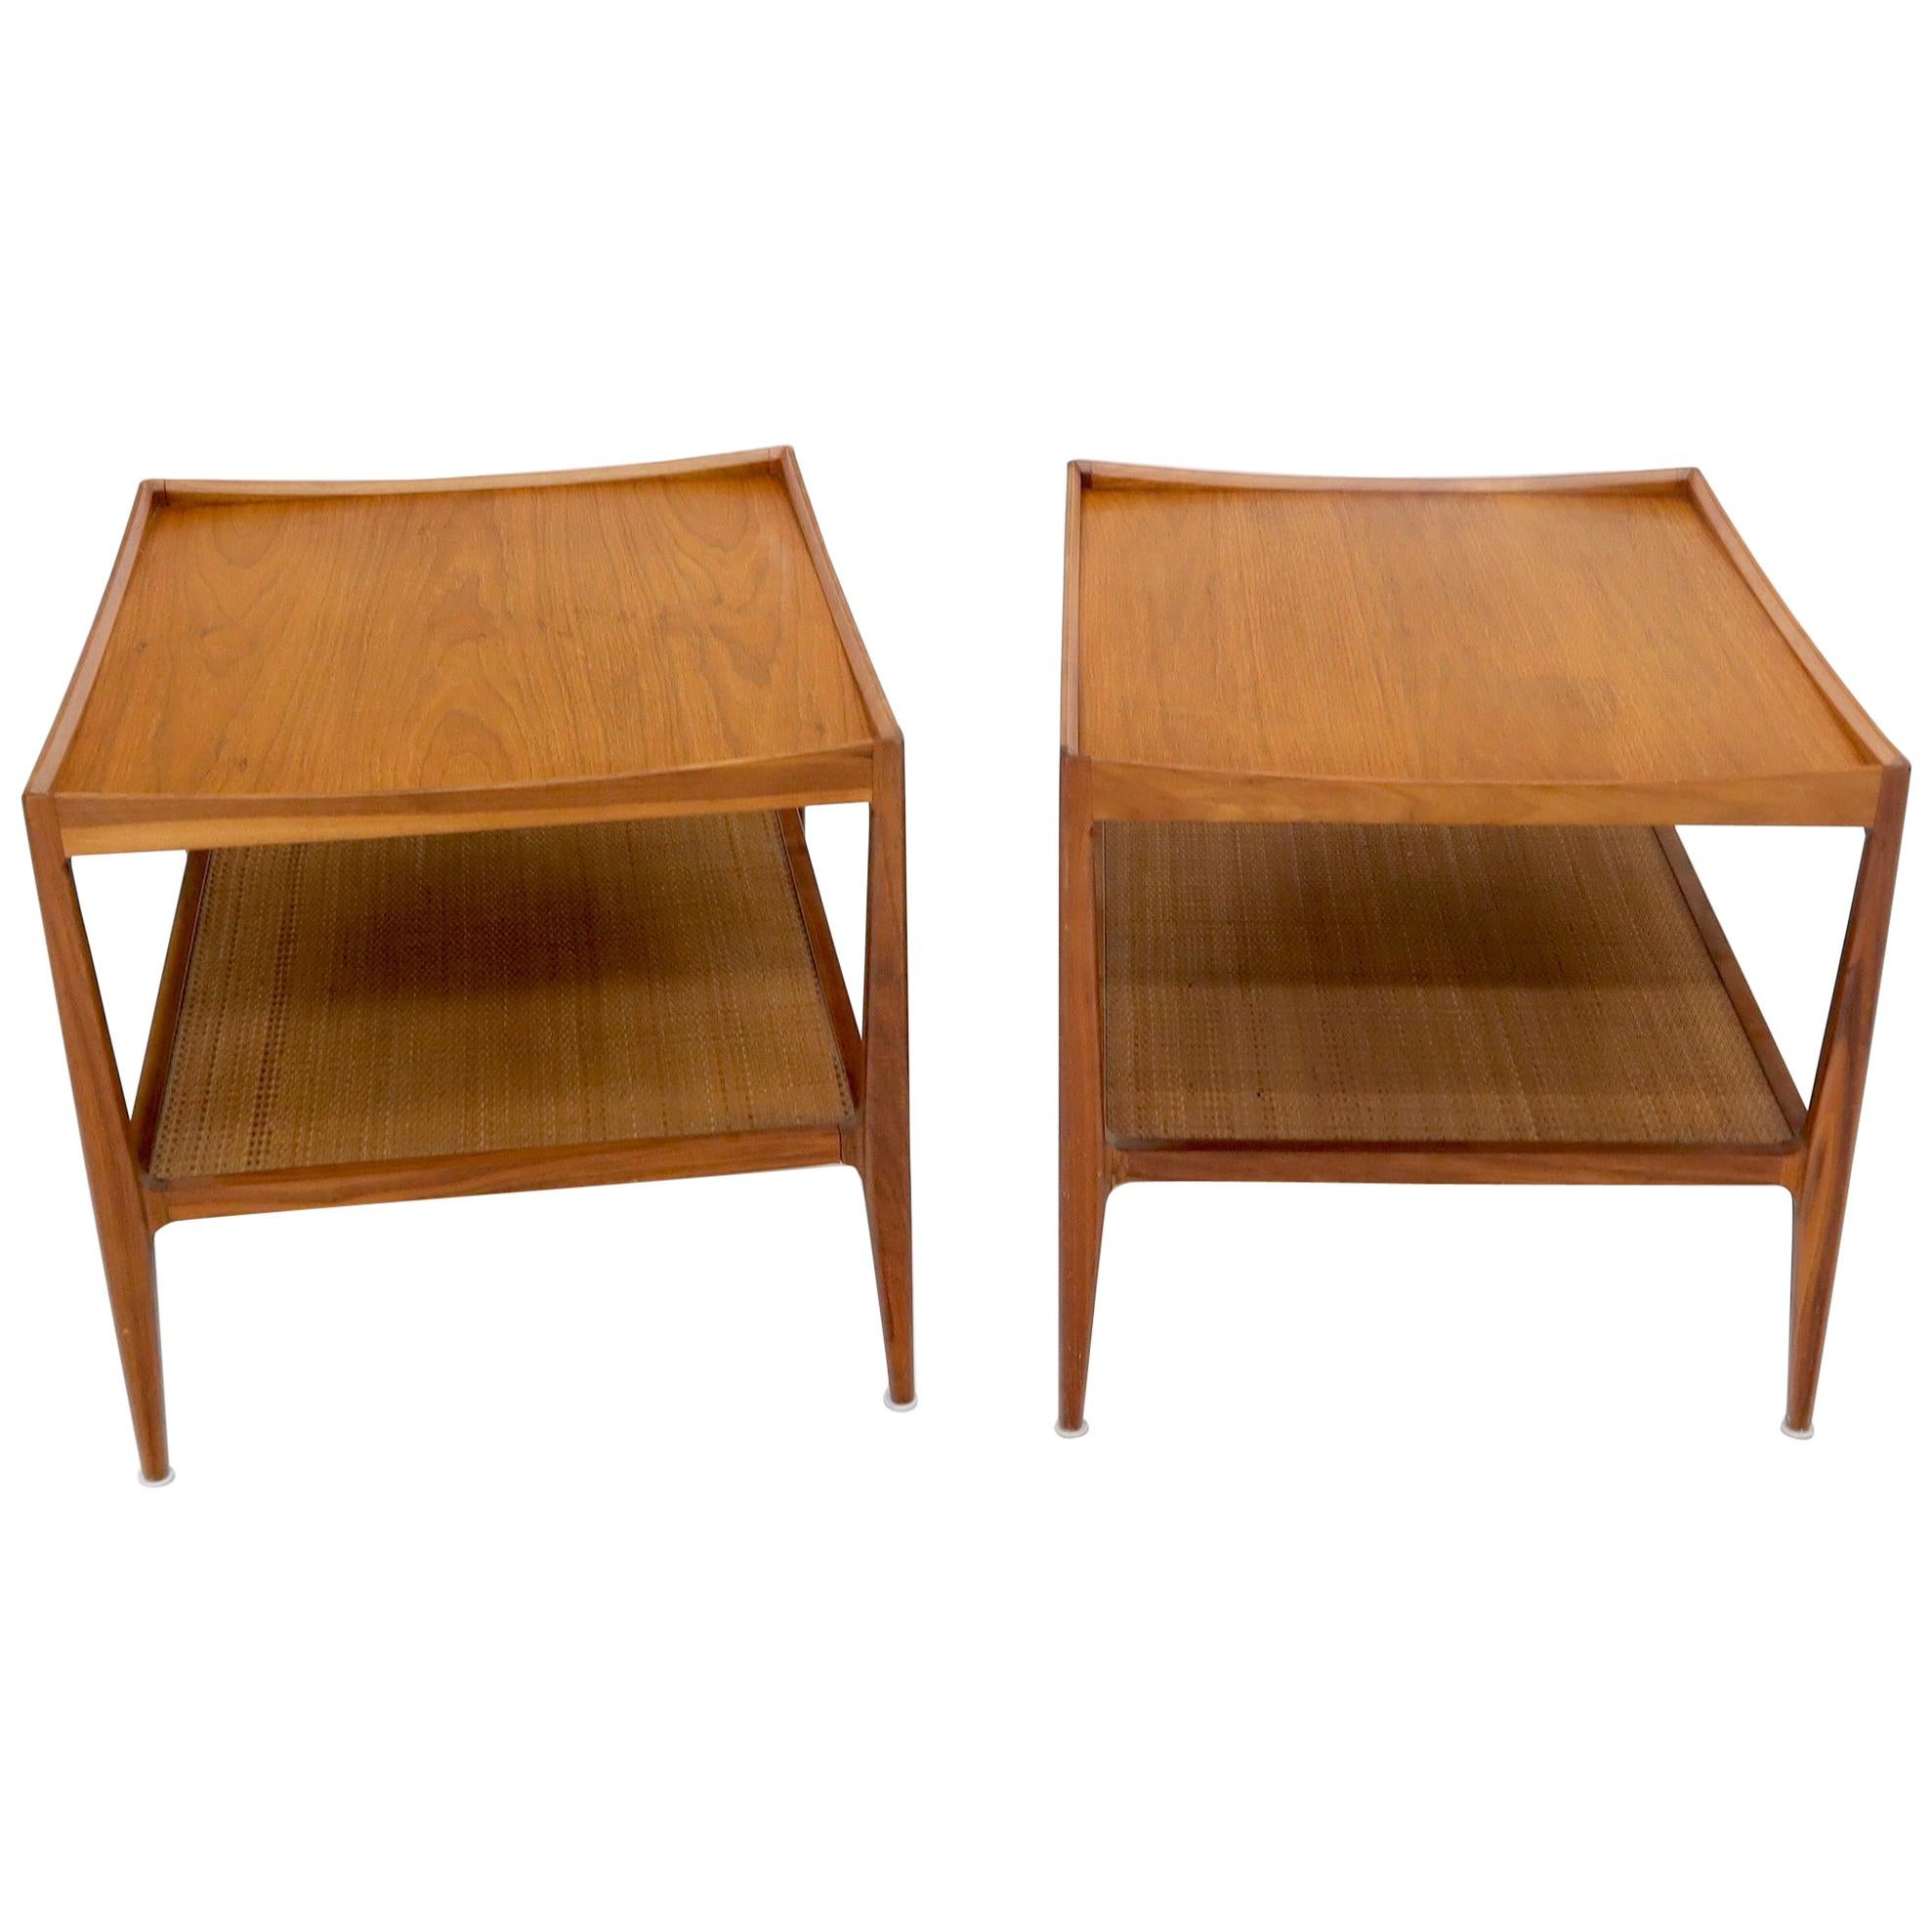 Pair of Walnut Mid-Century Modern Two-Tier Cane Shelf End Side Tables Stands